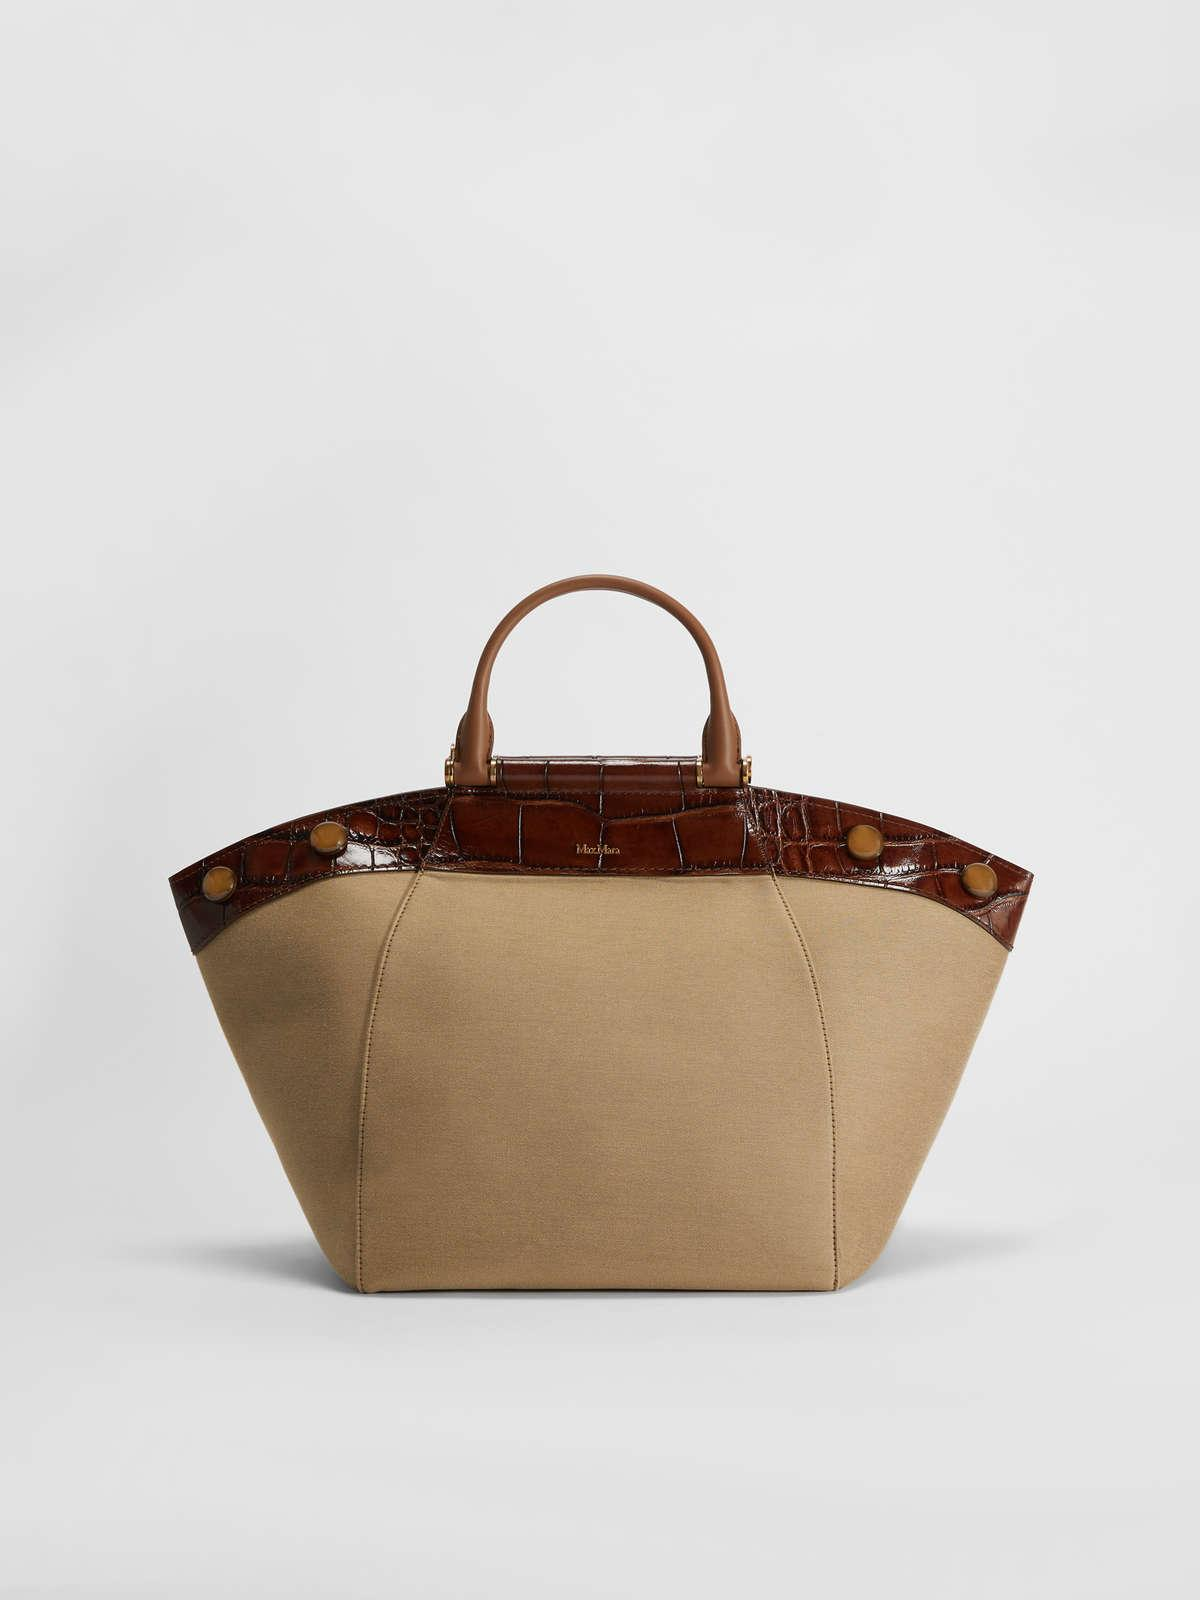 Womens Max Mara Handbags | Tote Bag In Leather And Fabric Tobacco